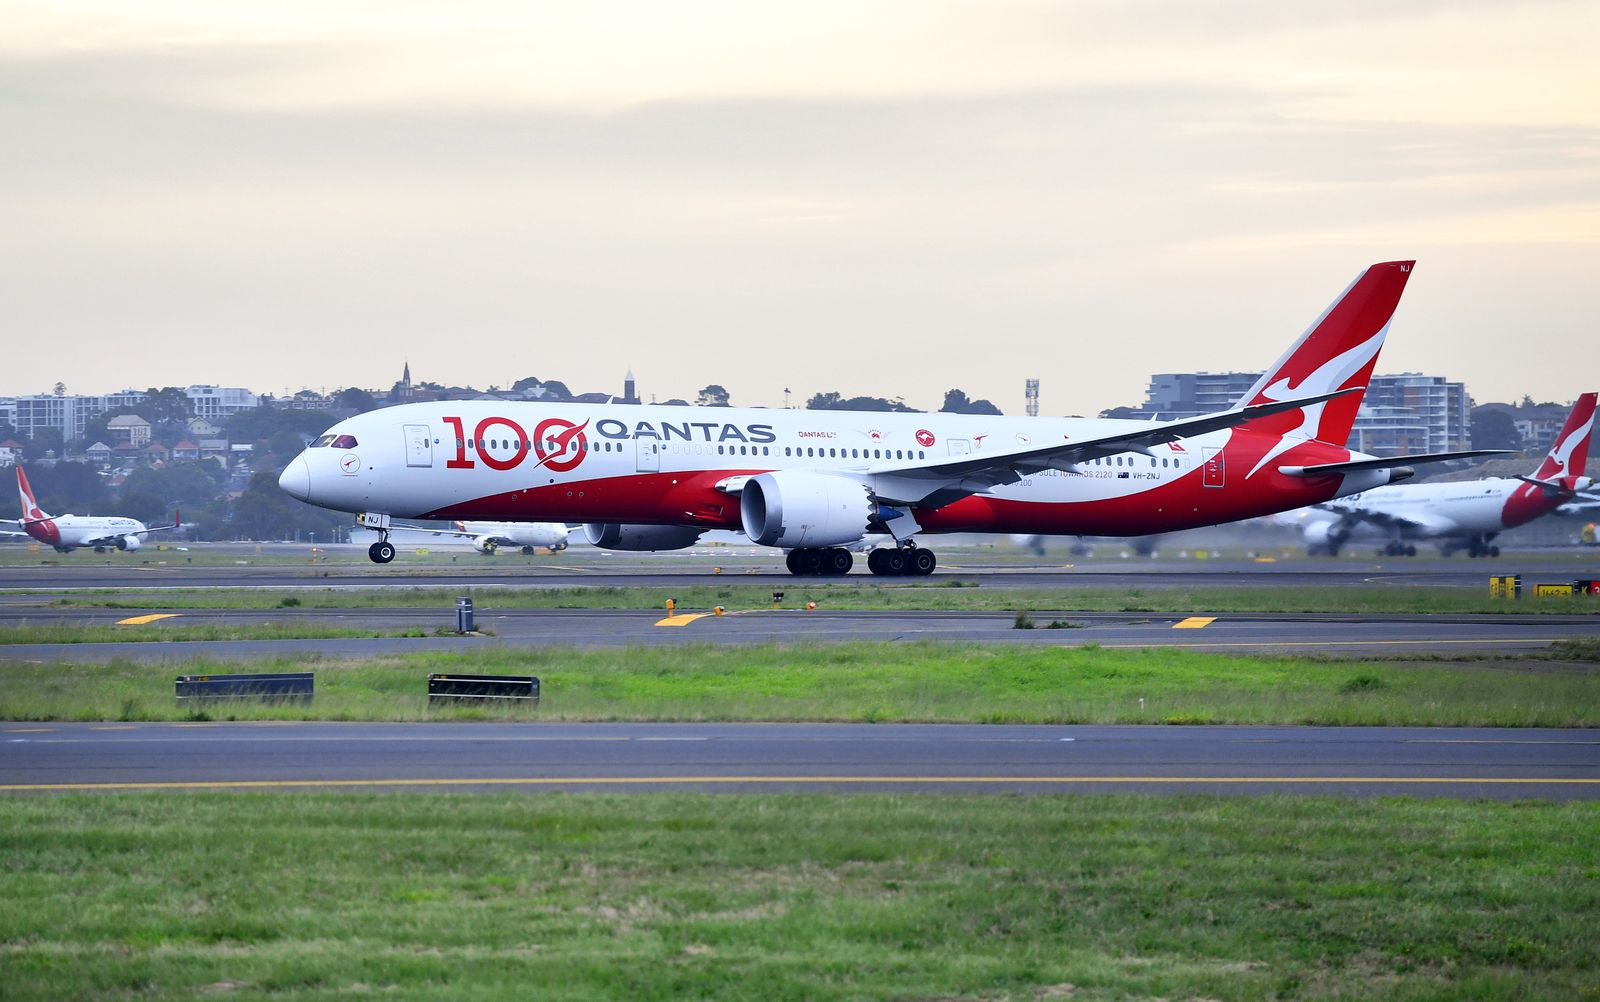 Qantas Airways QF100 flight, which marks the airline's 100th birthday, is seen at Sydney Airport before flying over Sydney Harbour in Australia